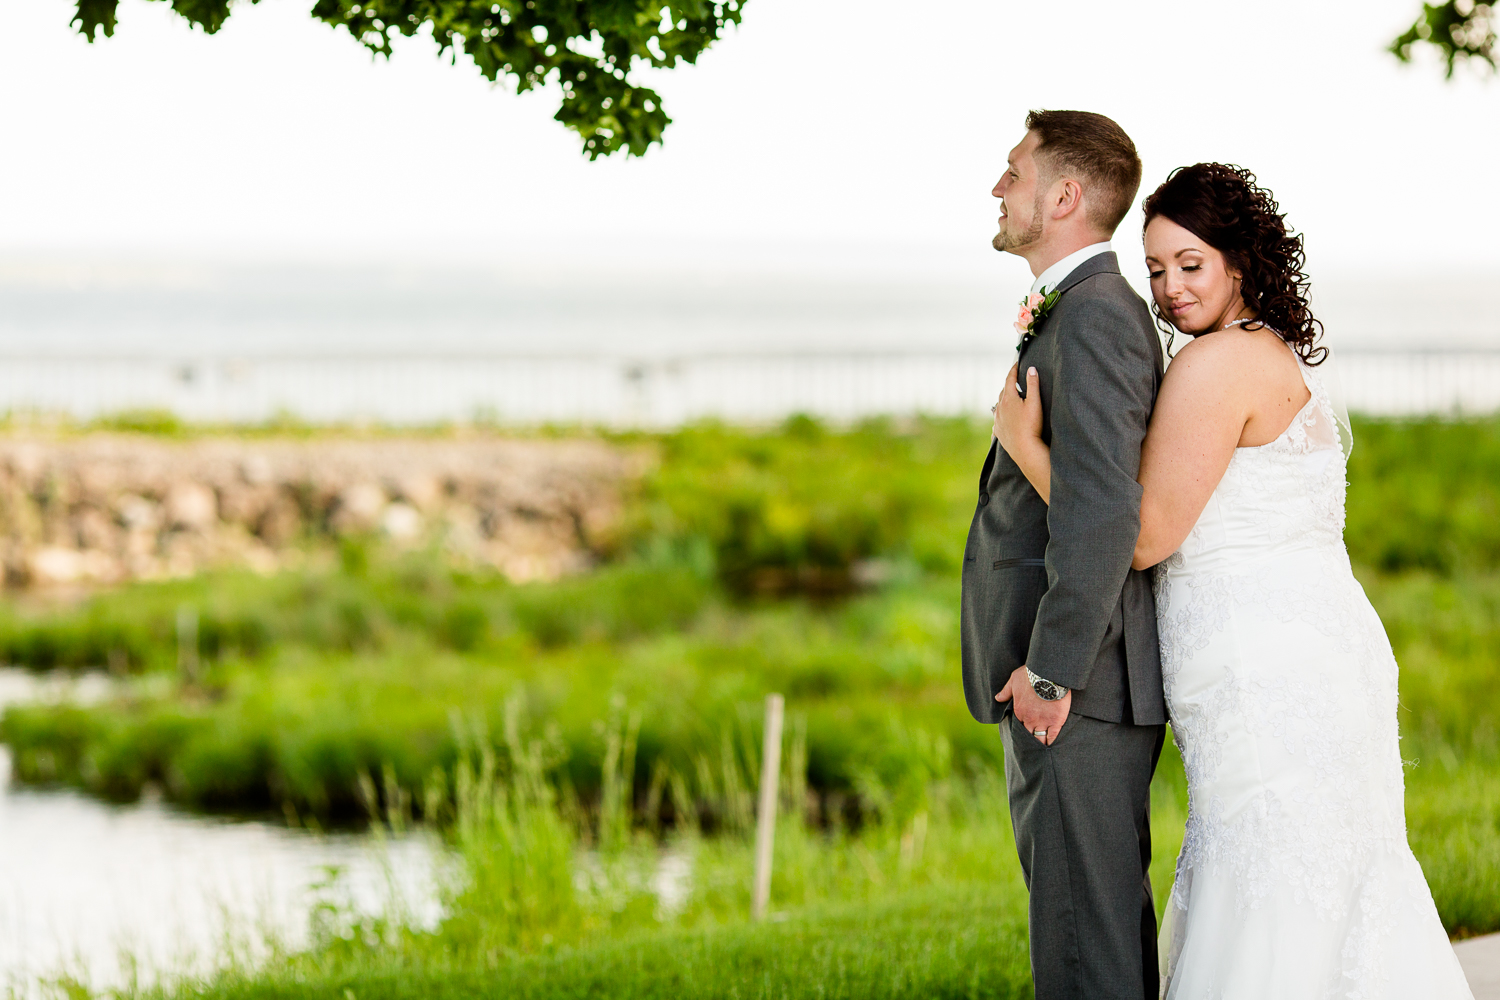 Bride holds groom from behind. Groom looks out into the distance. There is green grass behind them.